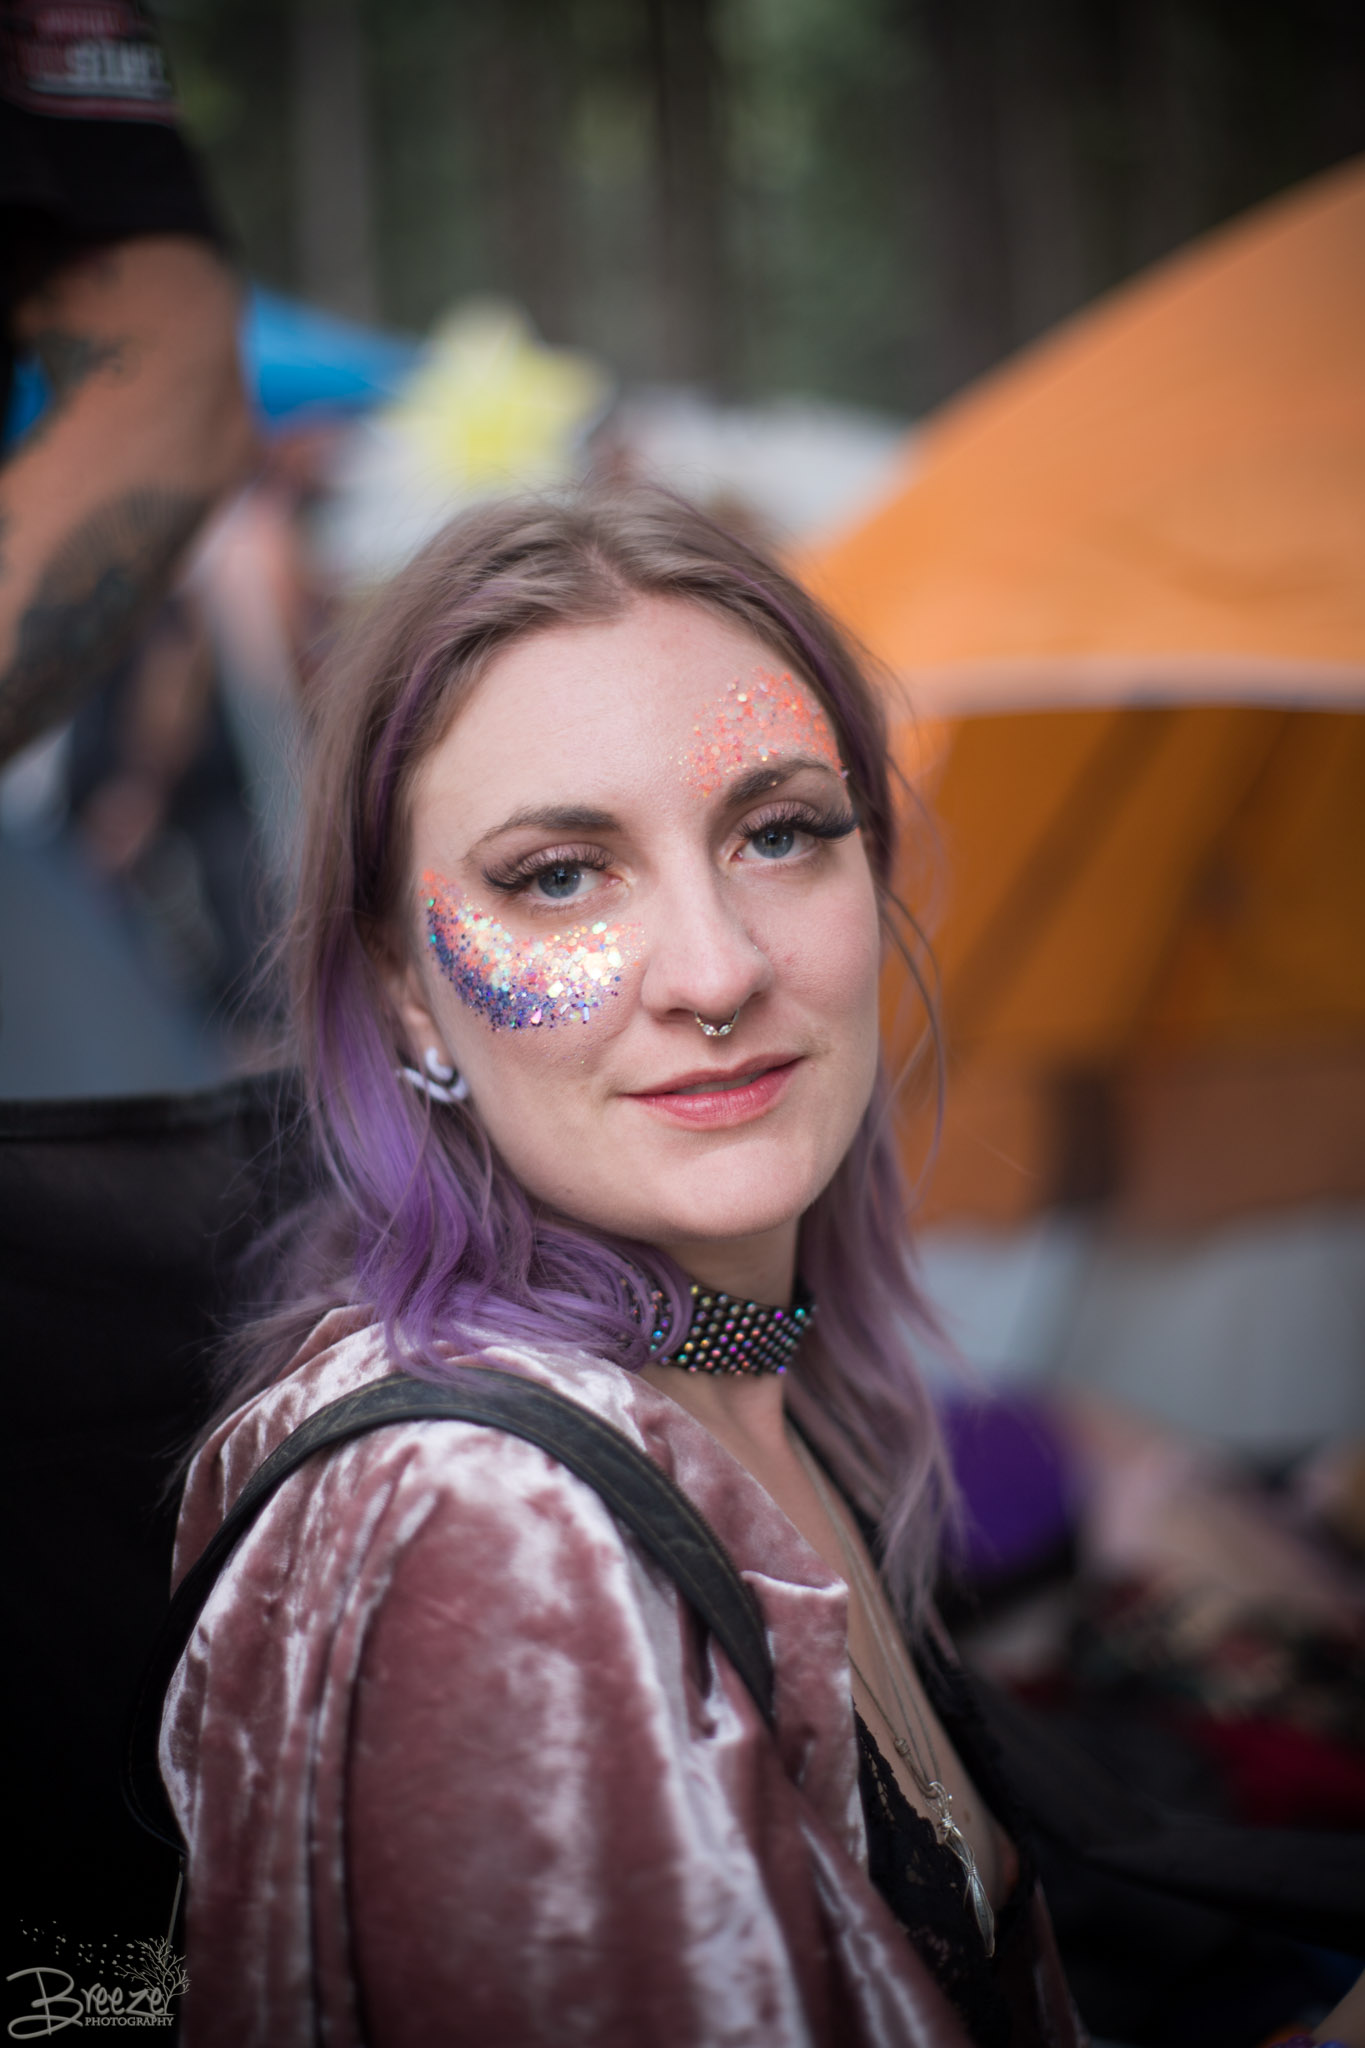 Brie'Ana Breeze Photography & Media - Shambhala 2018-1802.jpg